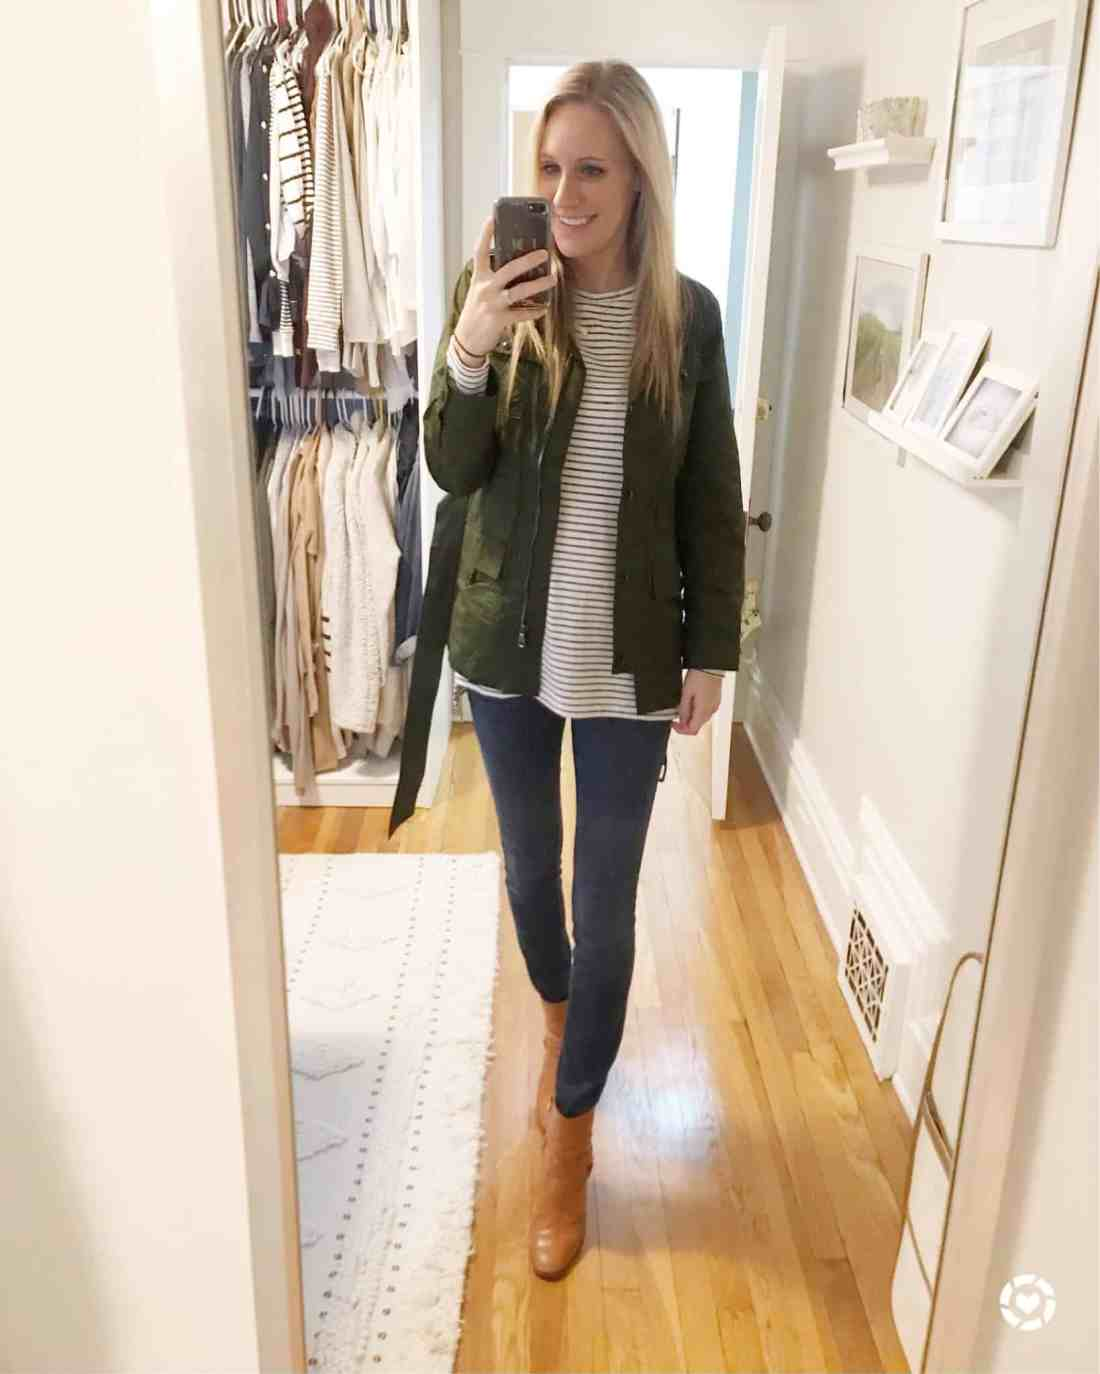 Instagram Maternity Outfits Round Up featured by top MI fashion blogger, House of Navy